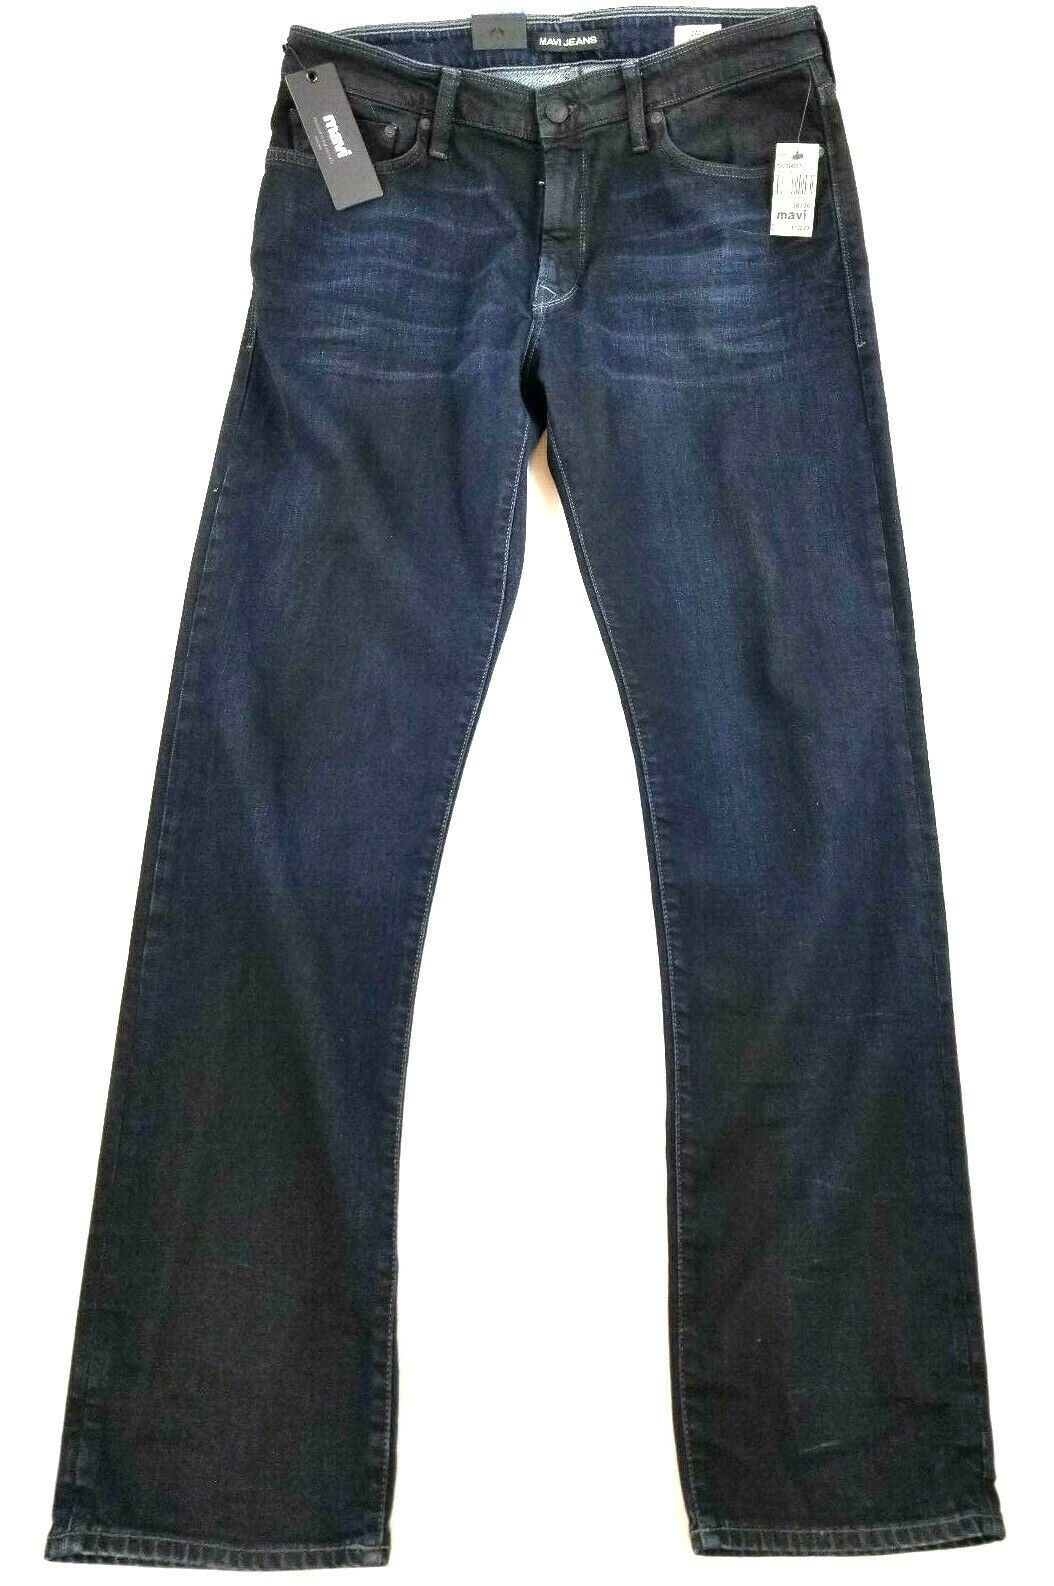 New MAVI jeans men jeans pants Zach straight leg W36 L36 bluee navy MSRP